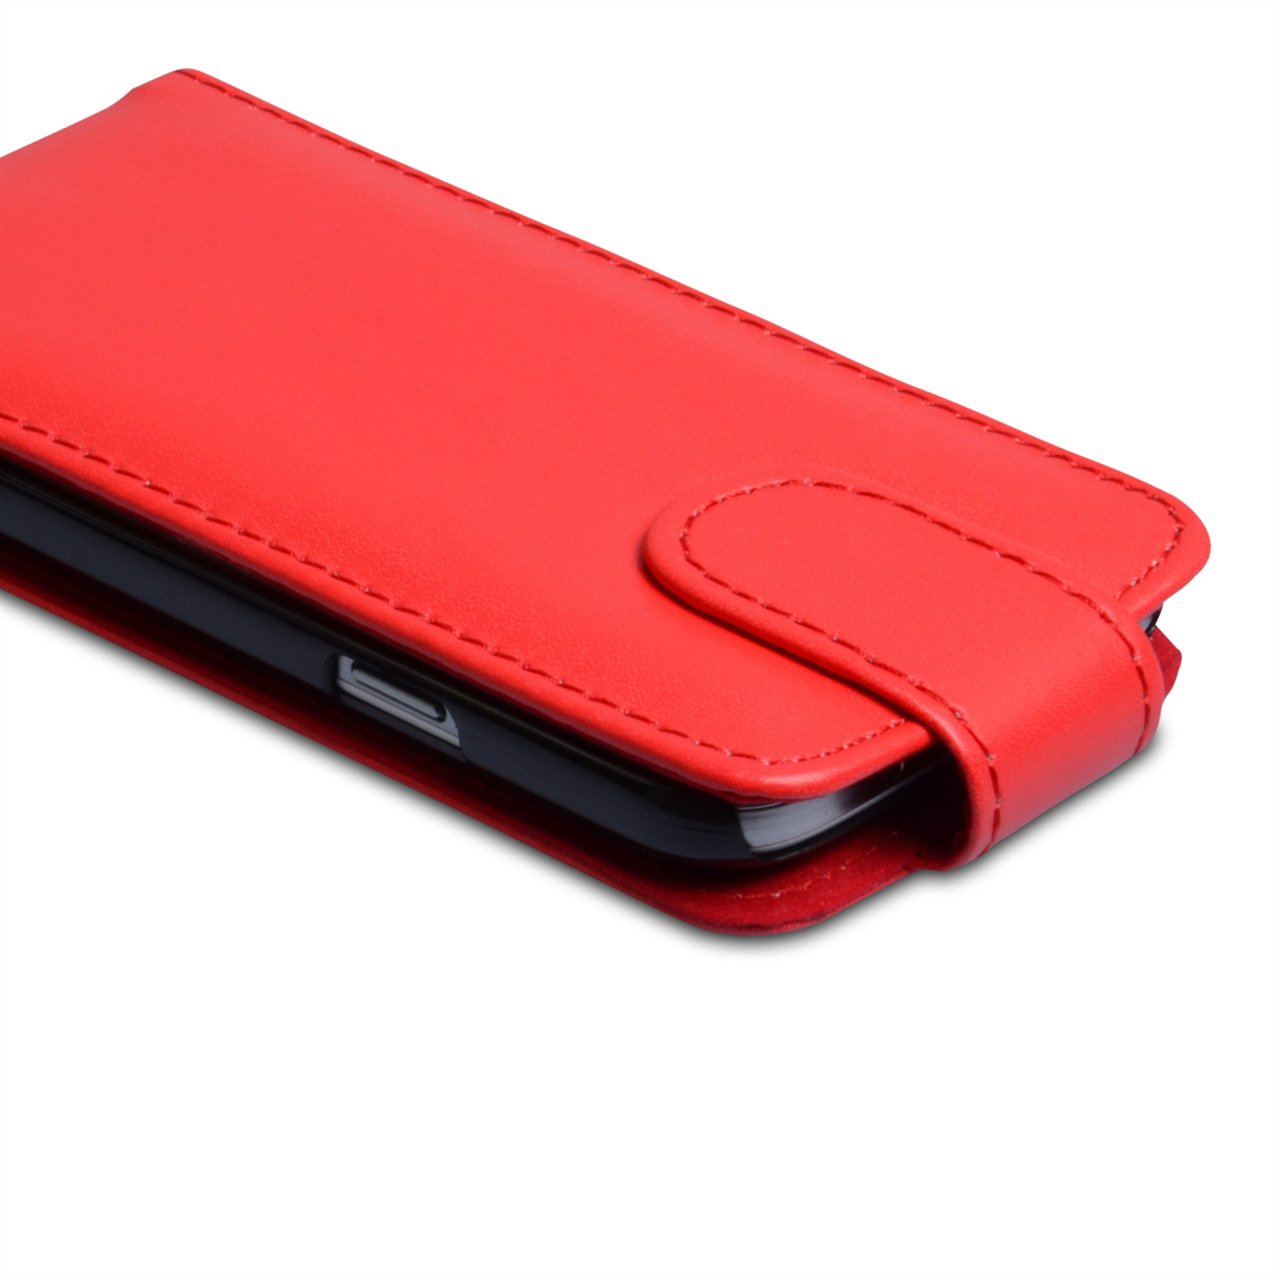 YouSave Samsung Galaxy S4 Mini Red Leather Effect Flip Case